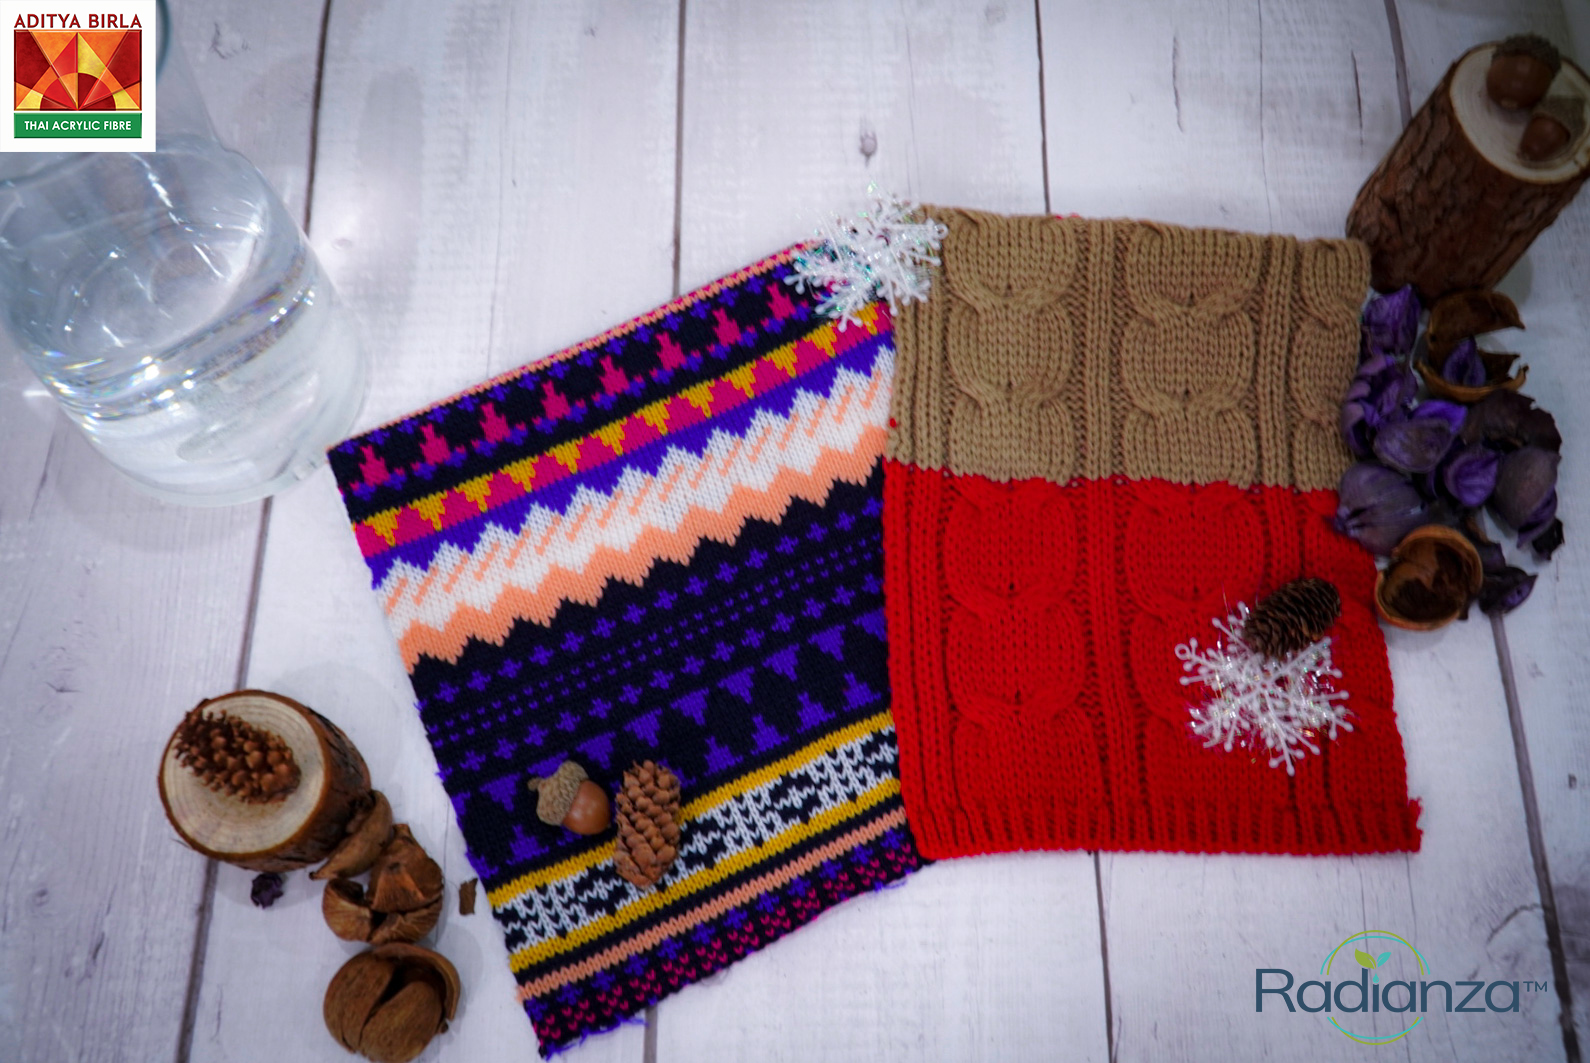 Radianza™ Textile Collection by Germany Based Designer